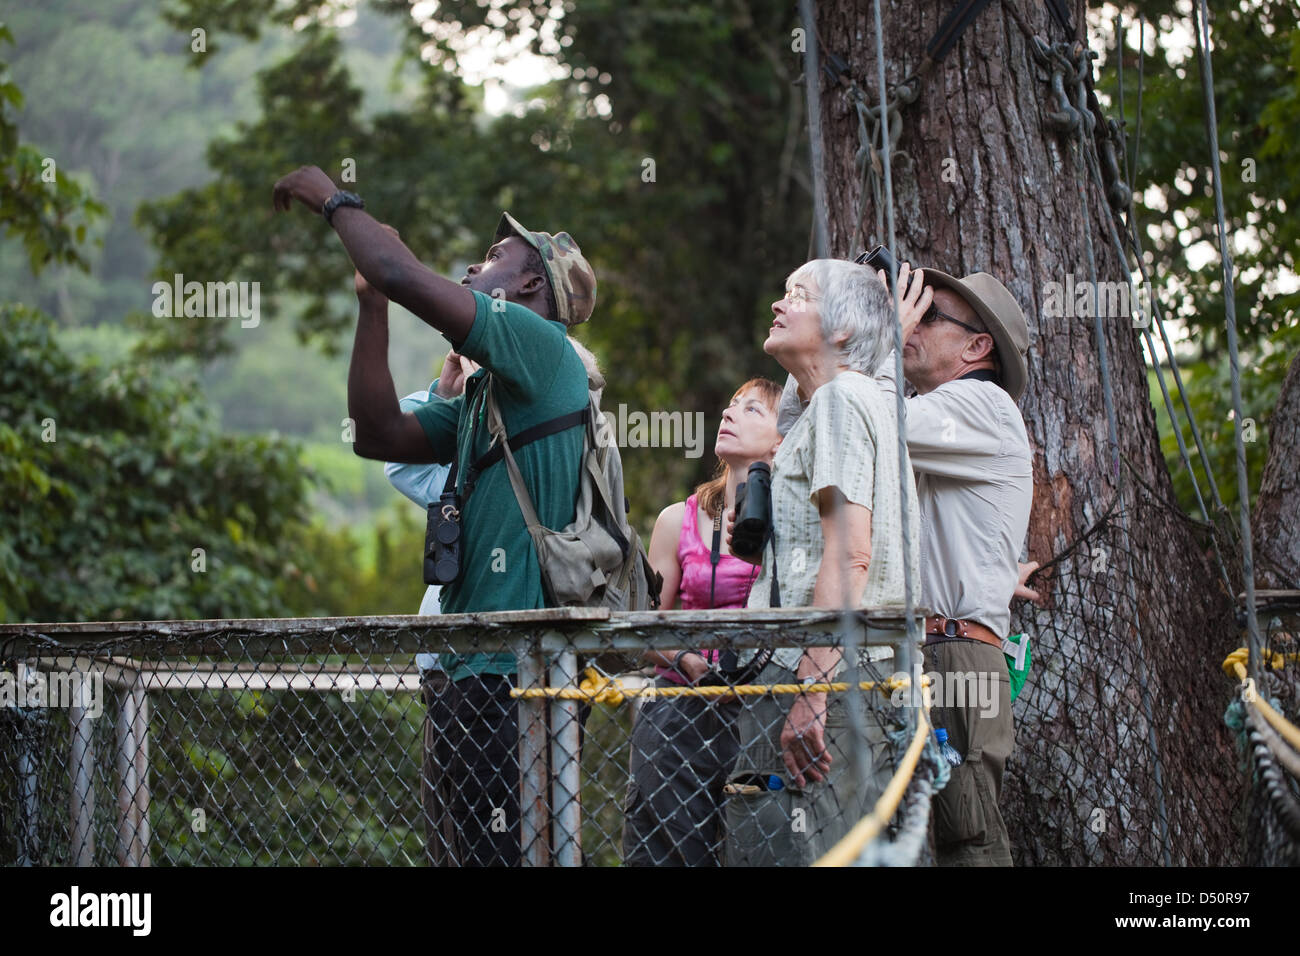 Iwokrama Canopy Walkway and ecotourists birdwatching with a local guide. Platform and connecting slung bridging. Guyana. & Iwokrama Canopy Walkway and ecotourists birdwatching with a local ...